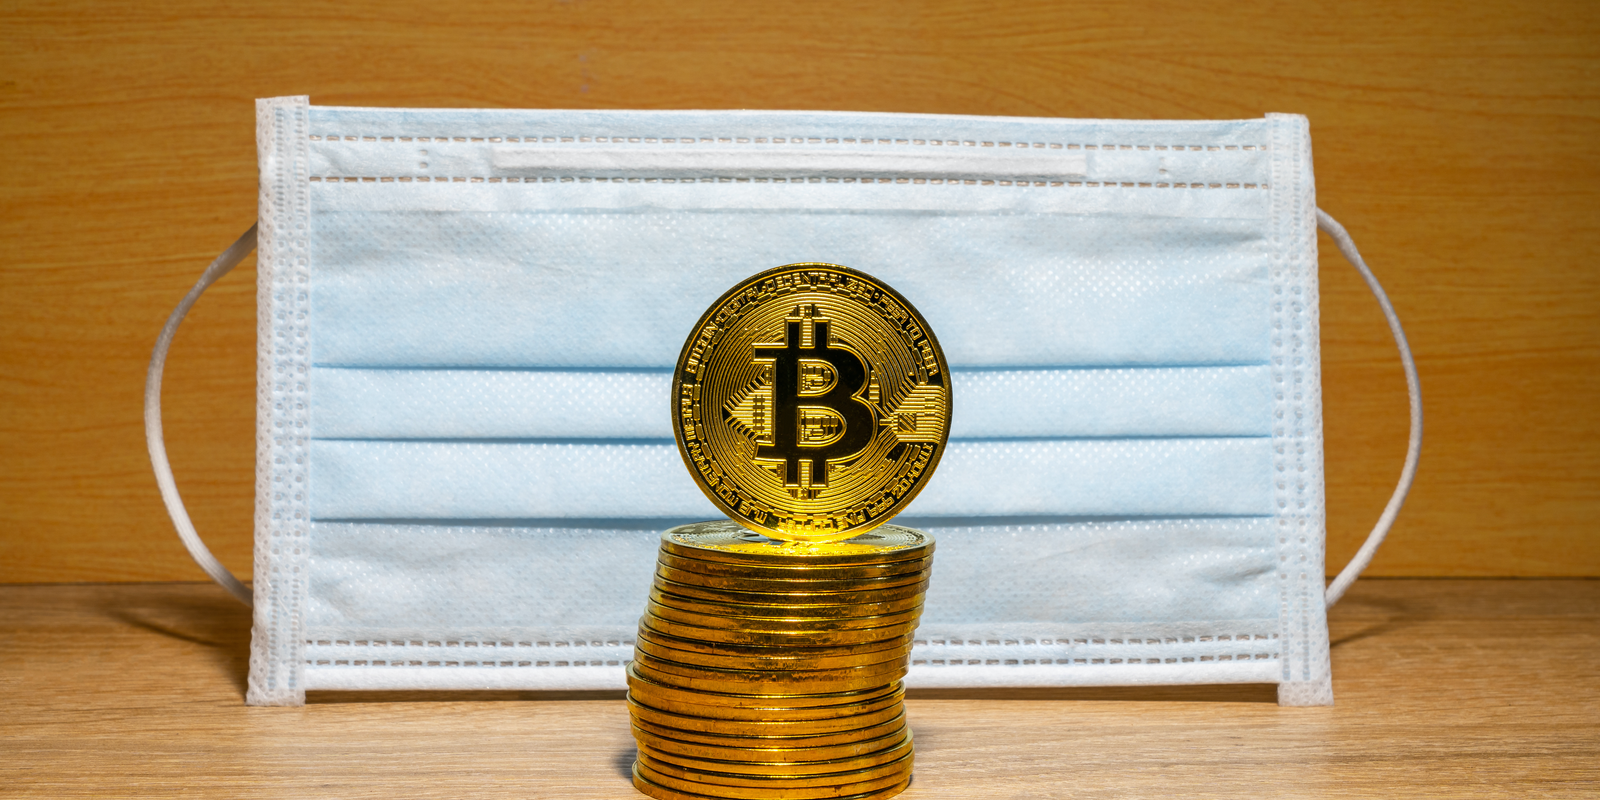 Making Bitcoin Go Viral: Could Endless Printing Trigger a Hyperbitcoinization Event?